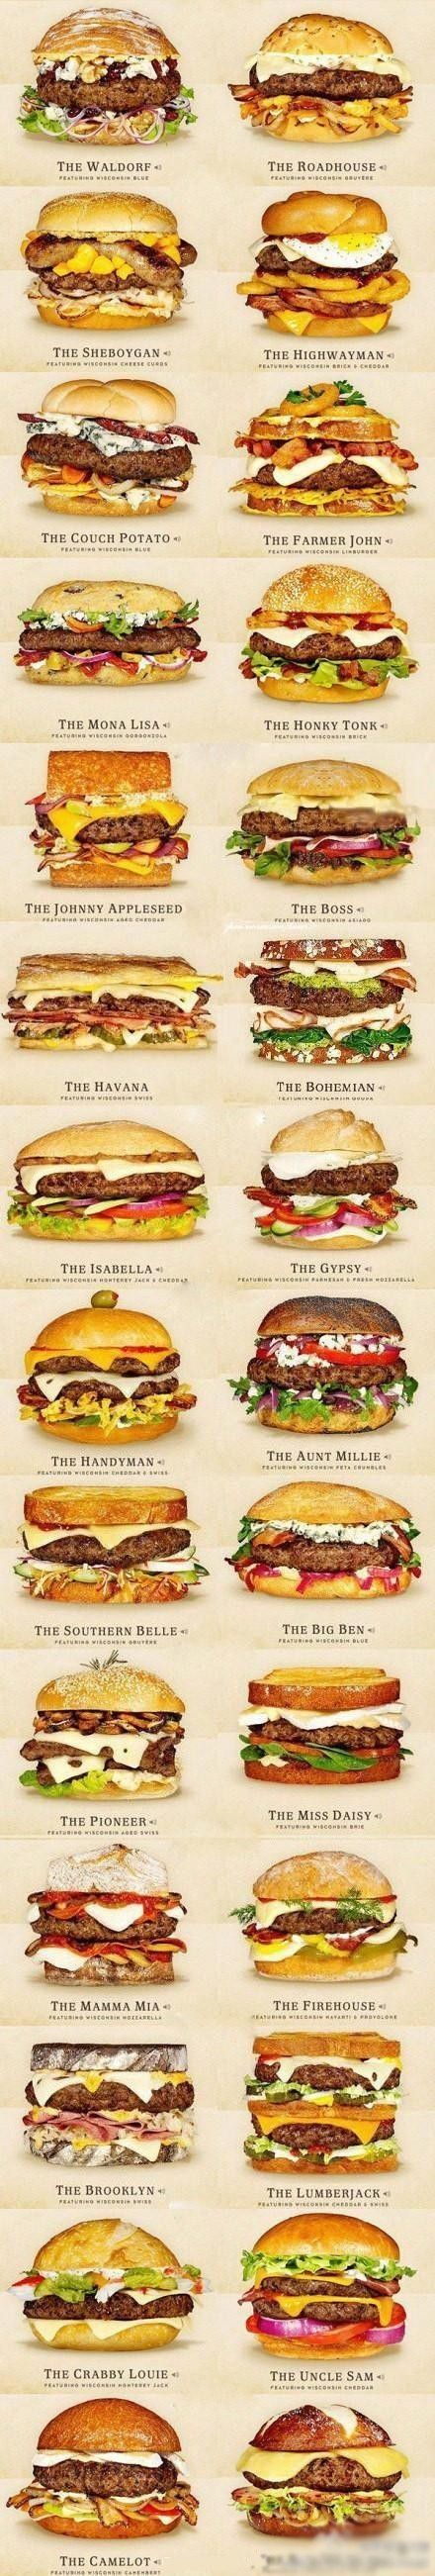 http://www.cheeseandburger.com/  Click the link for 30 amazing sounding cheeseburgers! <- Oh, god, yum!